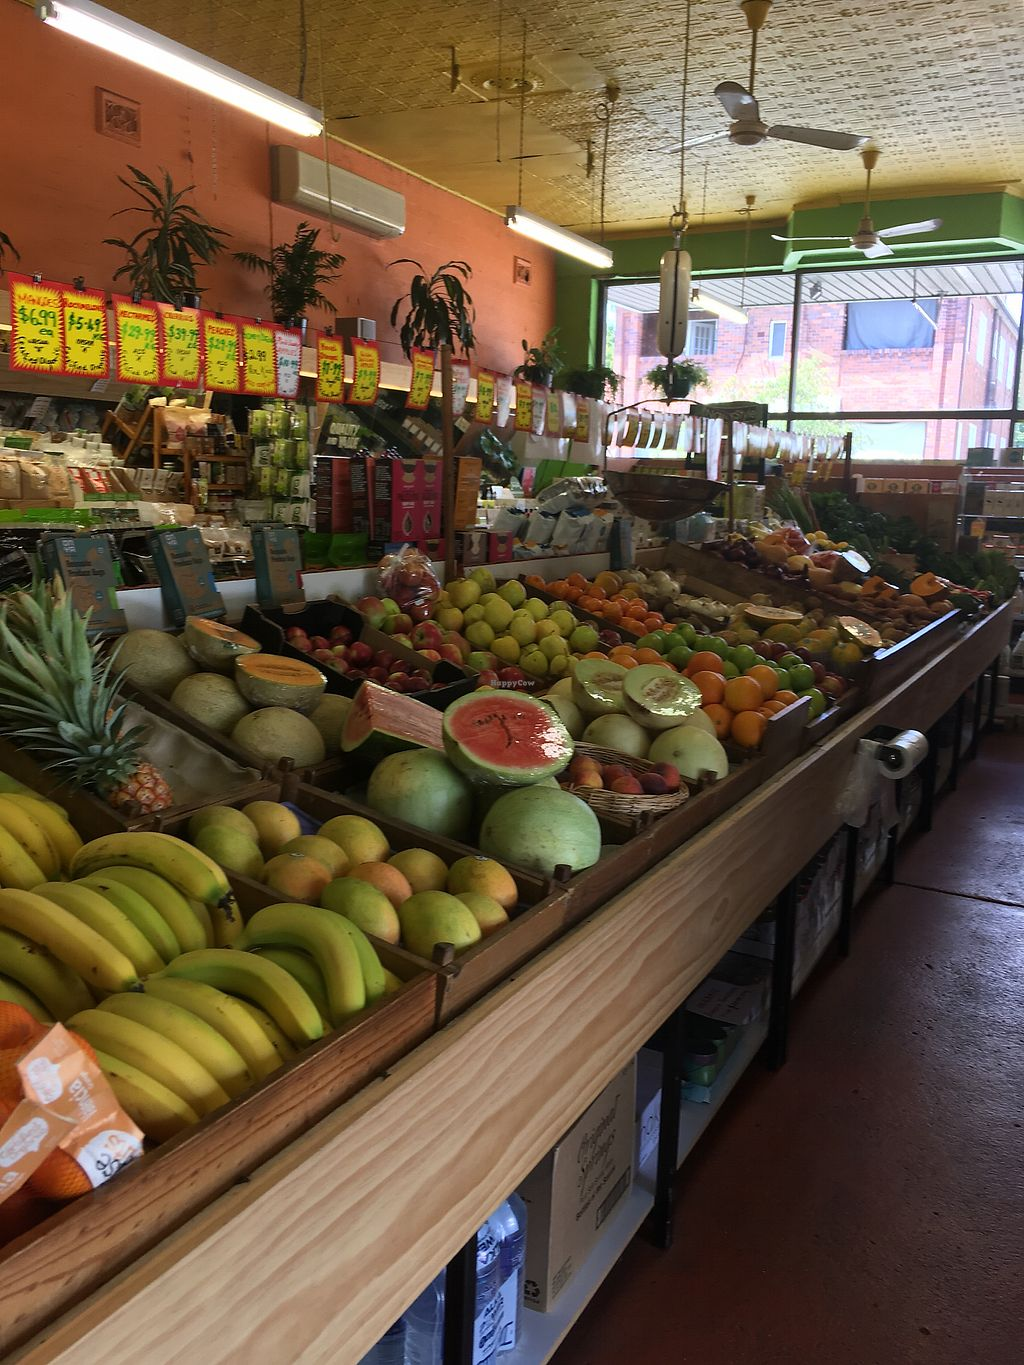 """Photo of Summer Hill Organic Fruit Market  by <a href=""""/members/profile/Mslanei"""">Mslanei</a> <br/>Organic fruit and veg <br/> November 9, 2017  - <a href='/contact/abuse/image/104630/323554'>Report</a>"""